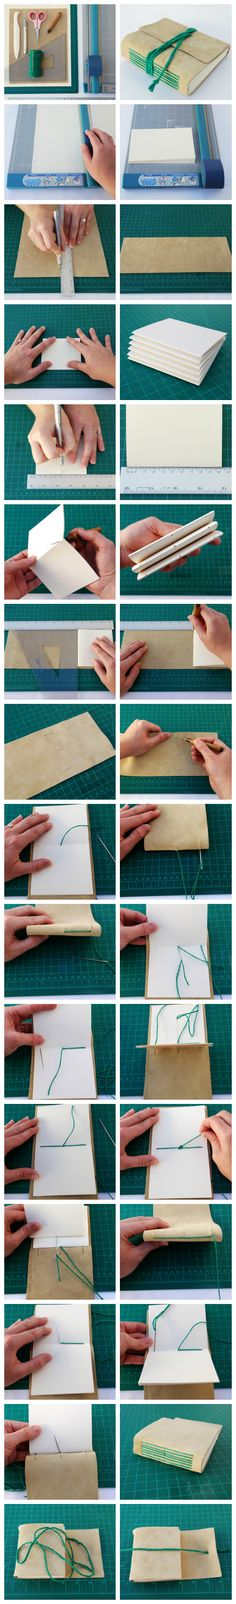 Tutorial #Bookbinding